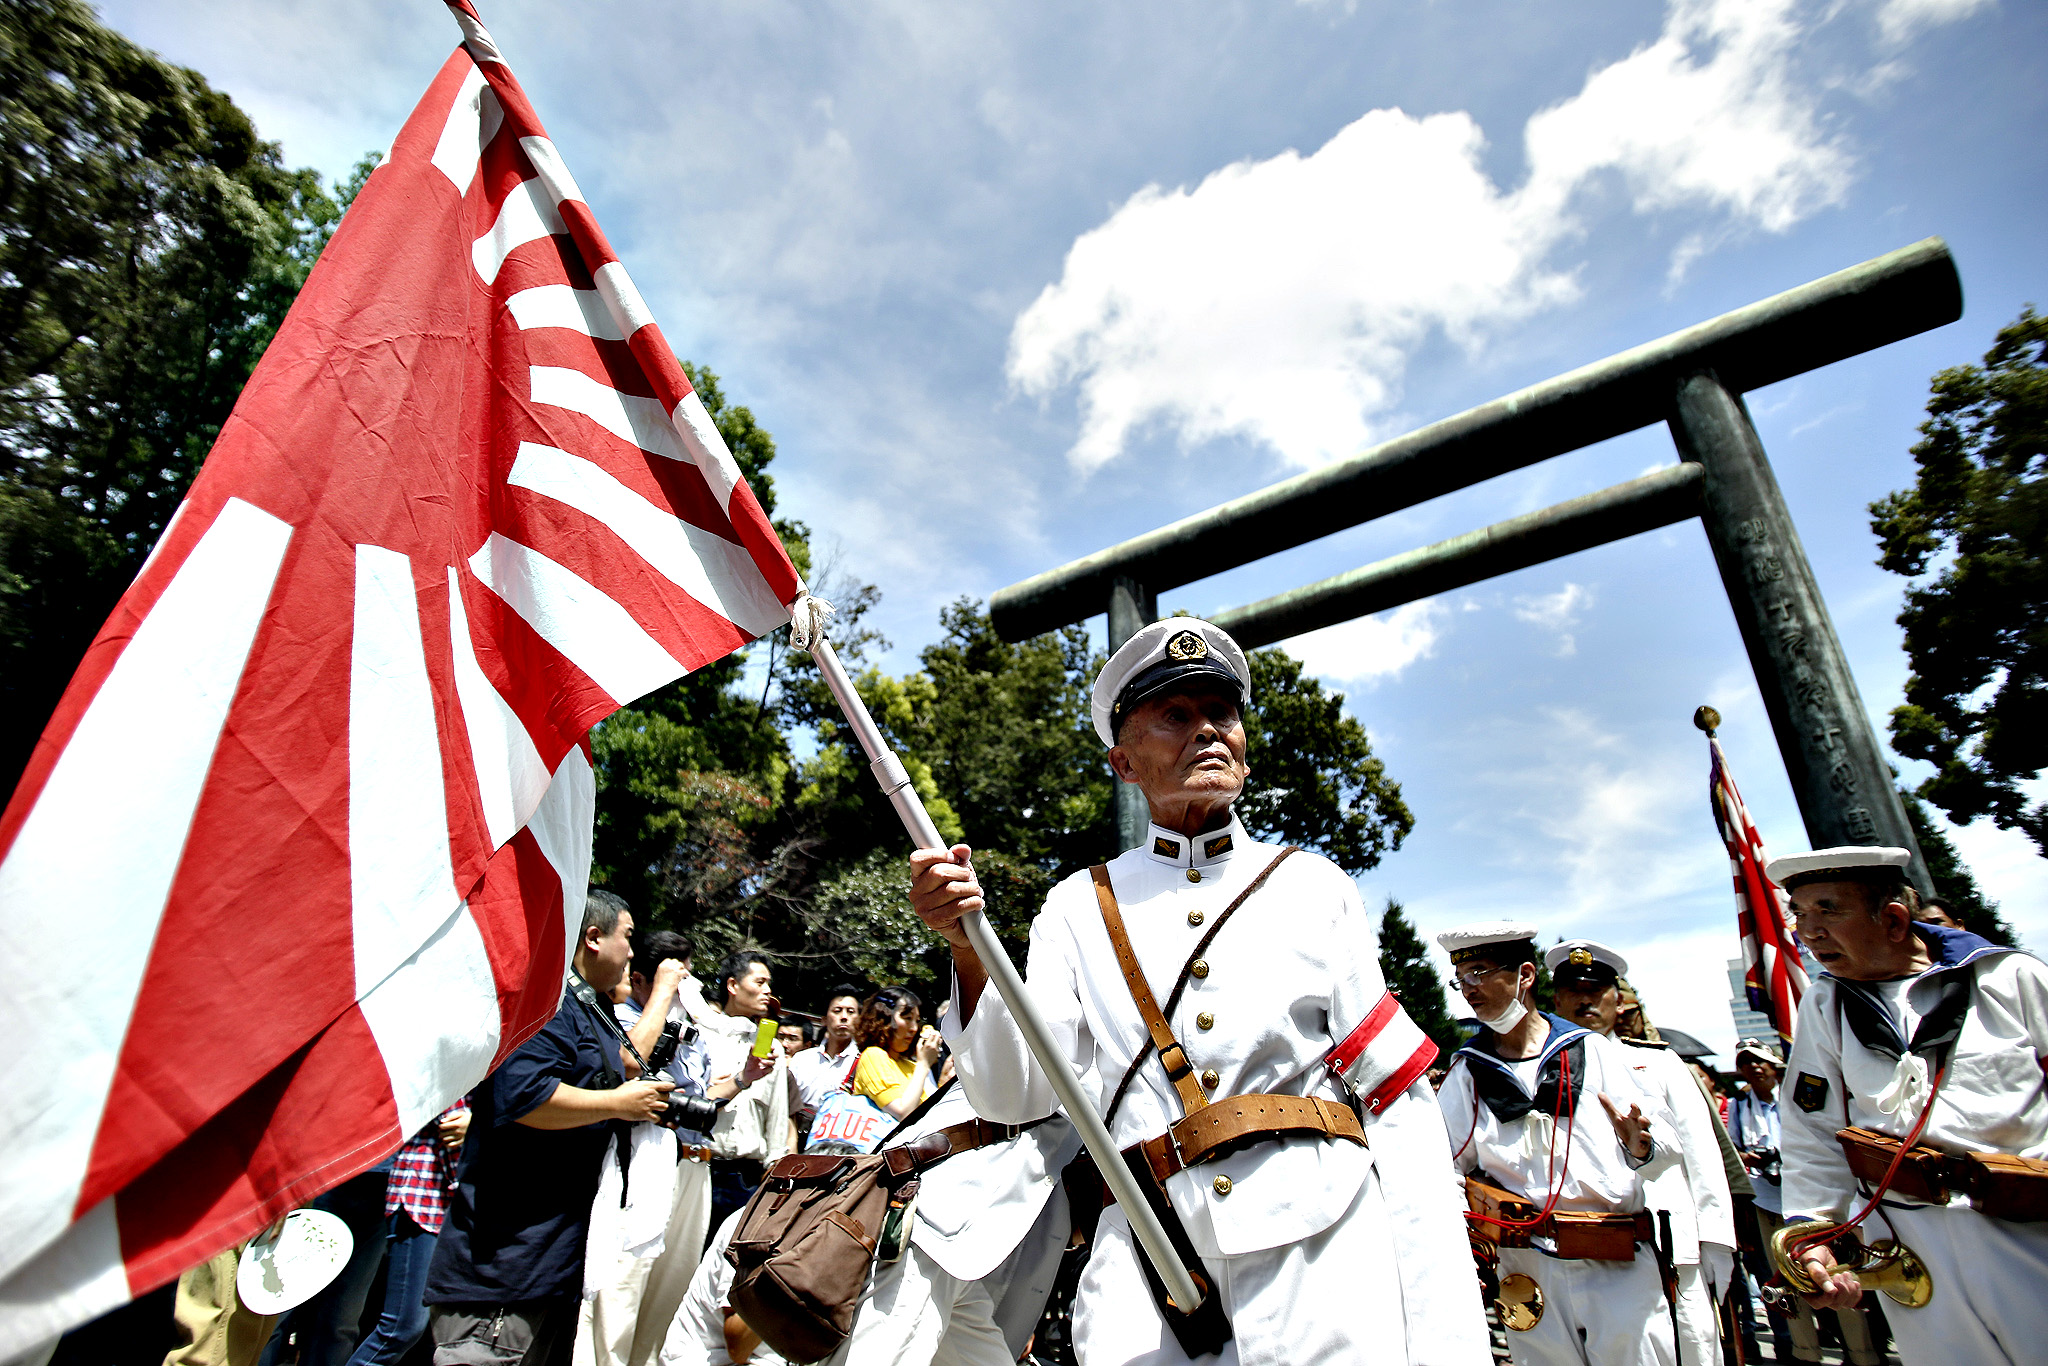 A man dressed in a navy uniform holds Japan's rising sun flag at the Yasukuni Shrine in Tokyo, Japan, on Friday, Aug. 15, 2014. Japanese Prime Minister Shinzo Abe stayed away from the Tokyo war shrine on the 69th anniversary of Japan s World War II defeat today, instead sending a donation as he seeks a summit with Chinese President Xi Jinping.